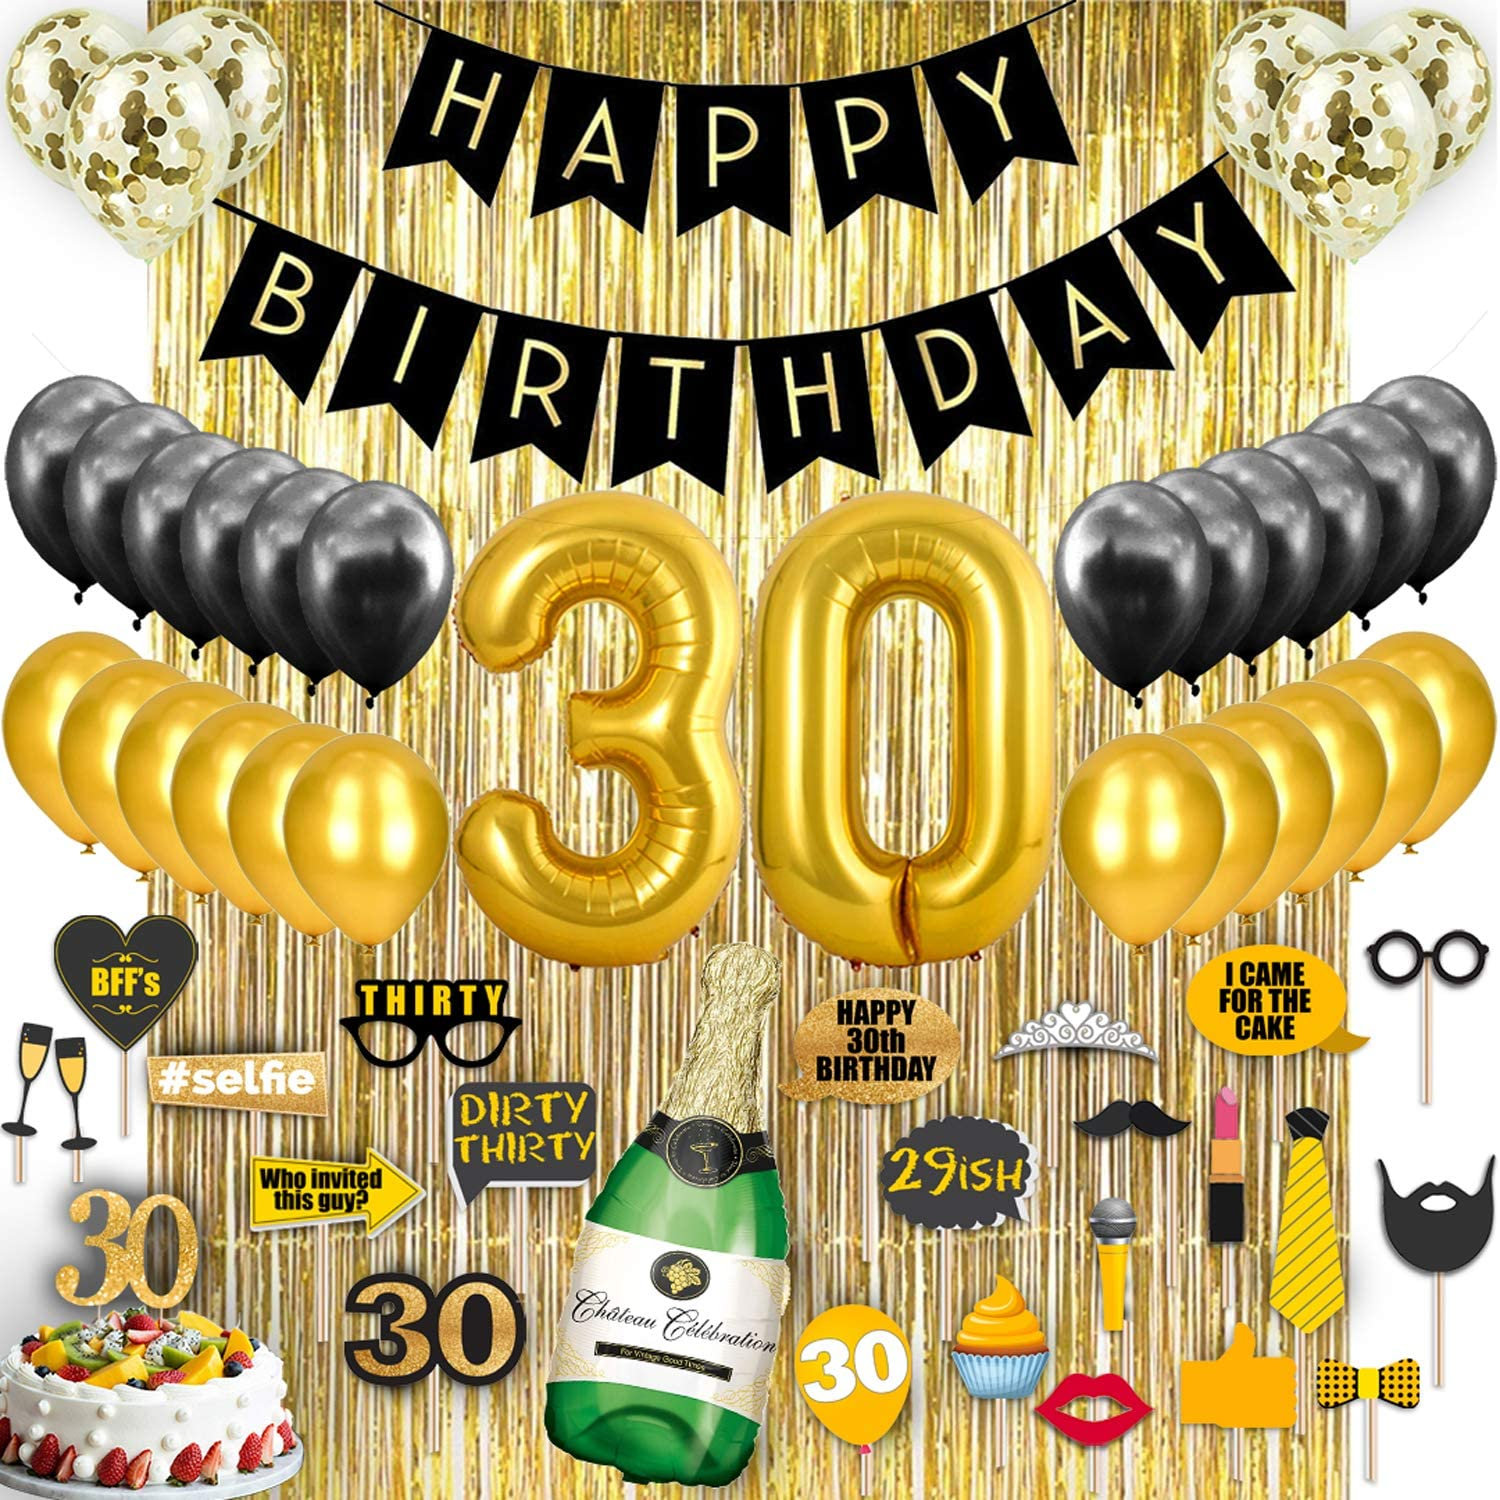 Amazon Com 30th Birthday Decorations Back Gold 30th Birthday Party Supplies Decorations Gold Foil Curtain Confetti Balloons Dirty Thirty 30th Birthday Gifts For Women And Men Photo Props Photo Booth Toys